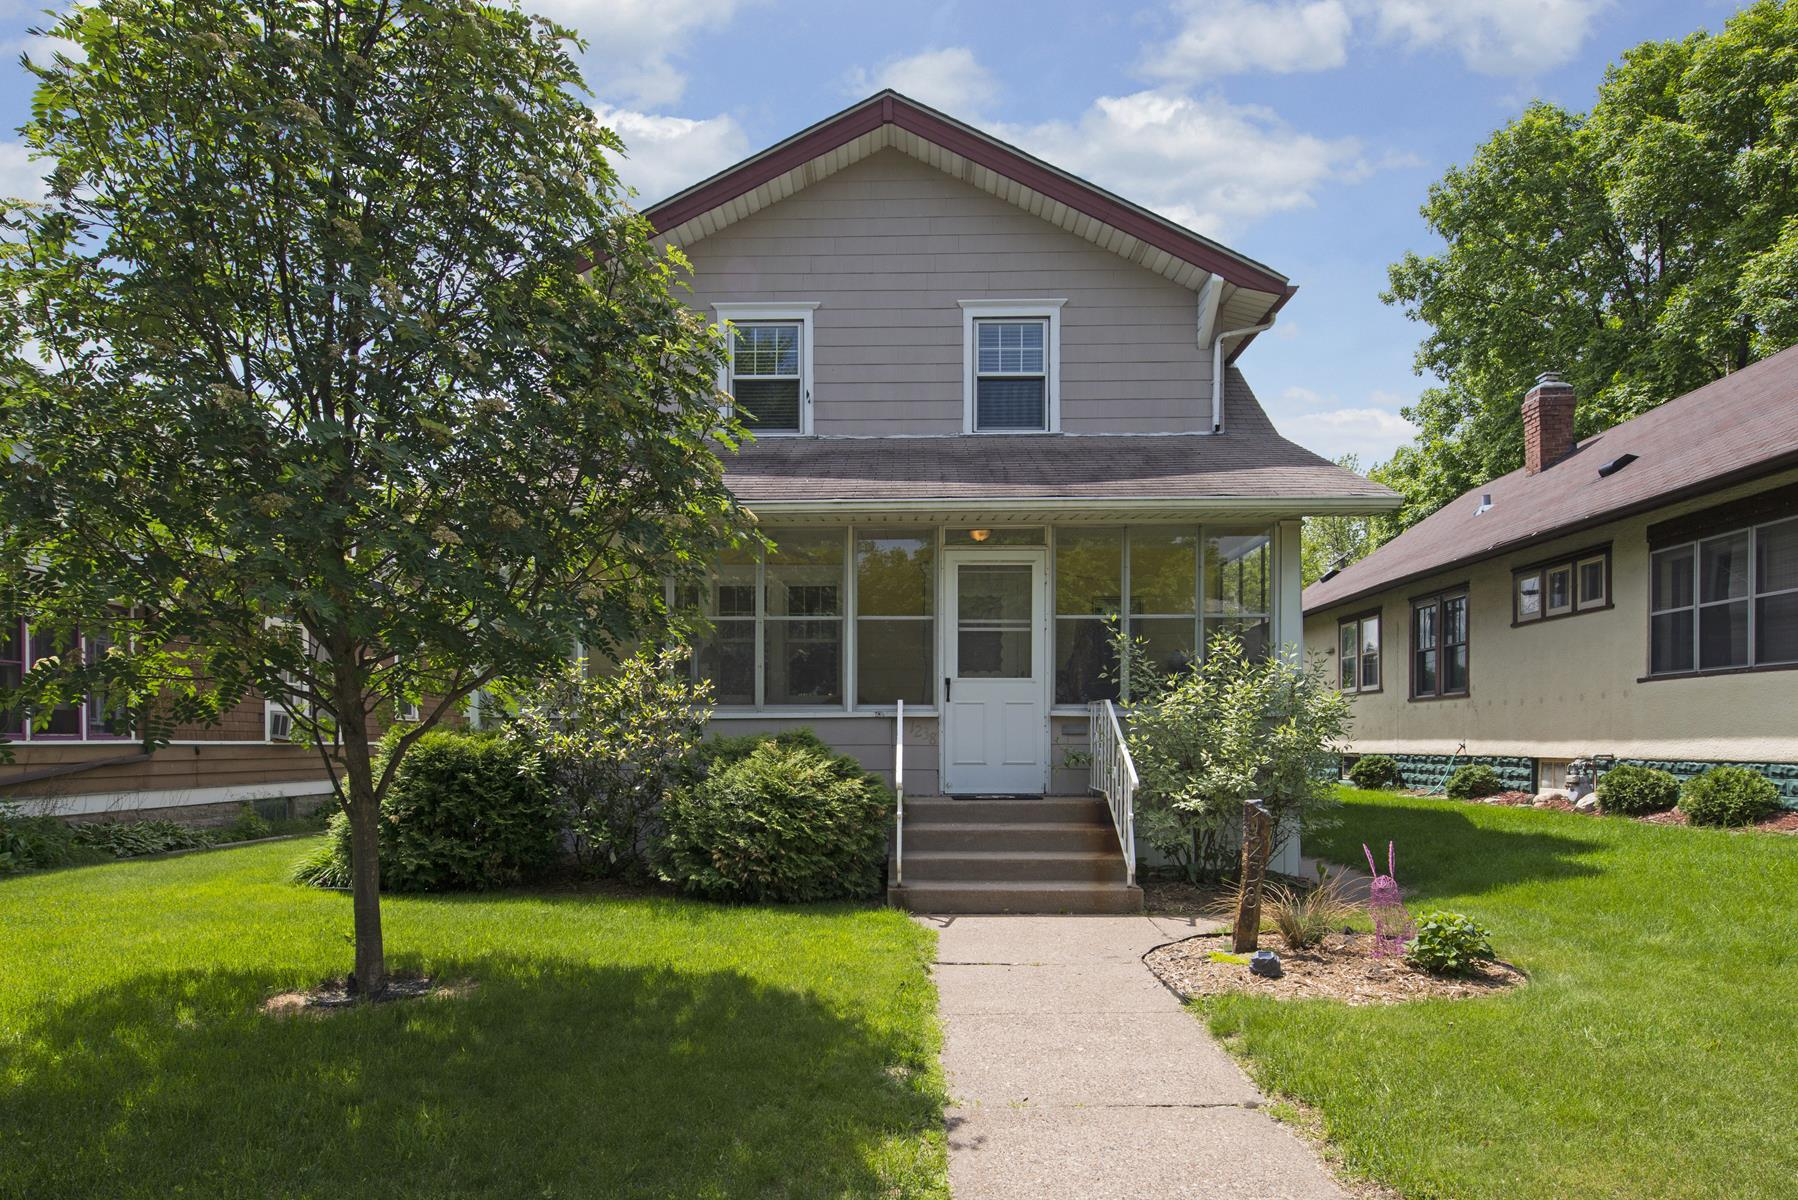 Single Family Home for Sale at 1238 Seminary Avenue Hamline Midway, St. Paul, Minnesota 55104 United States